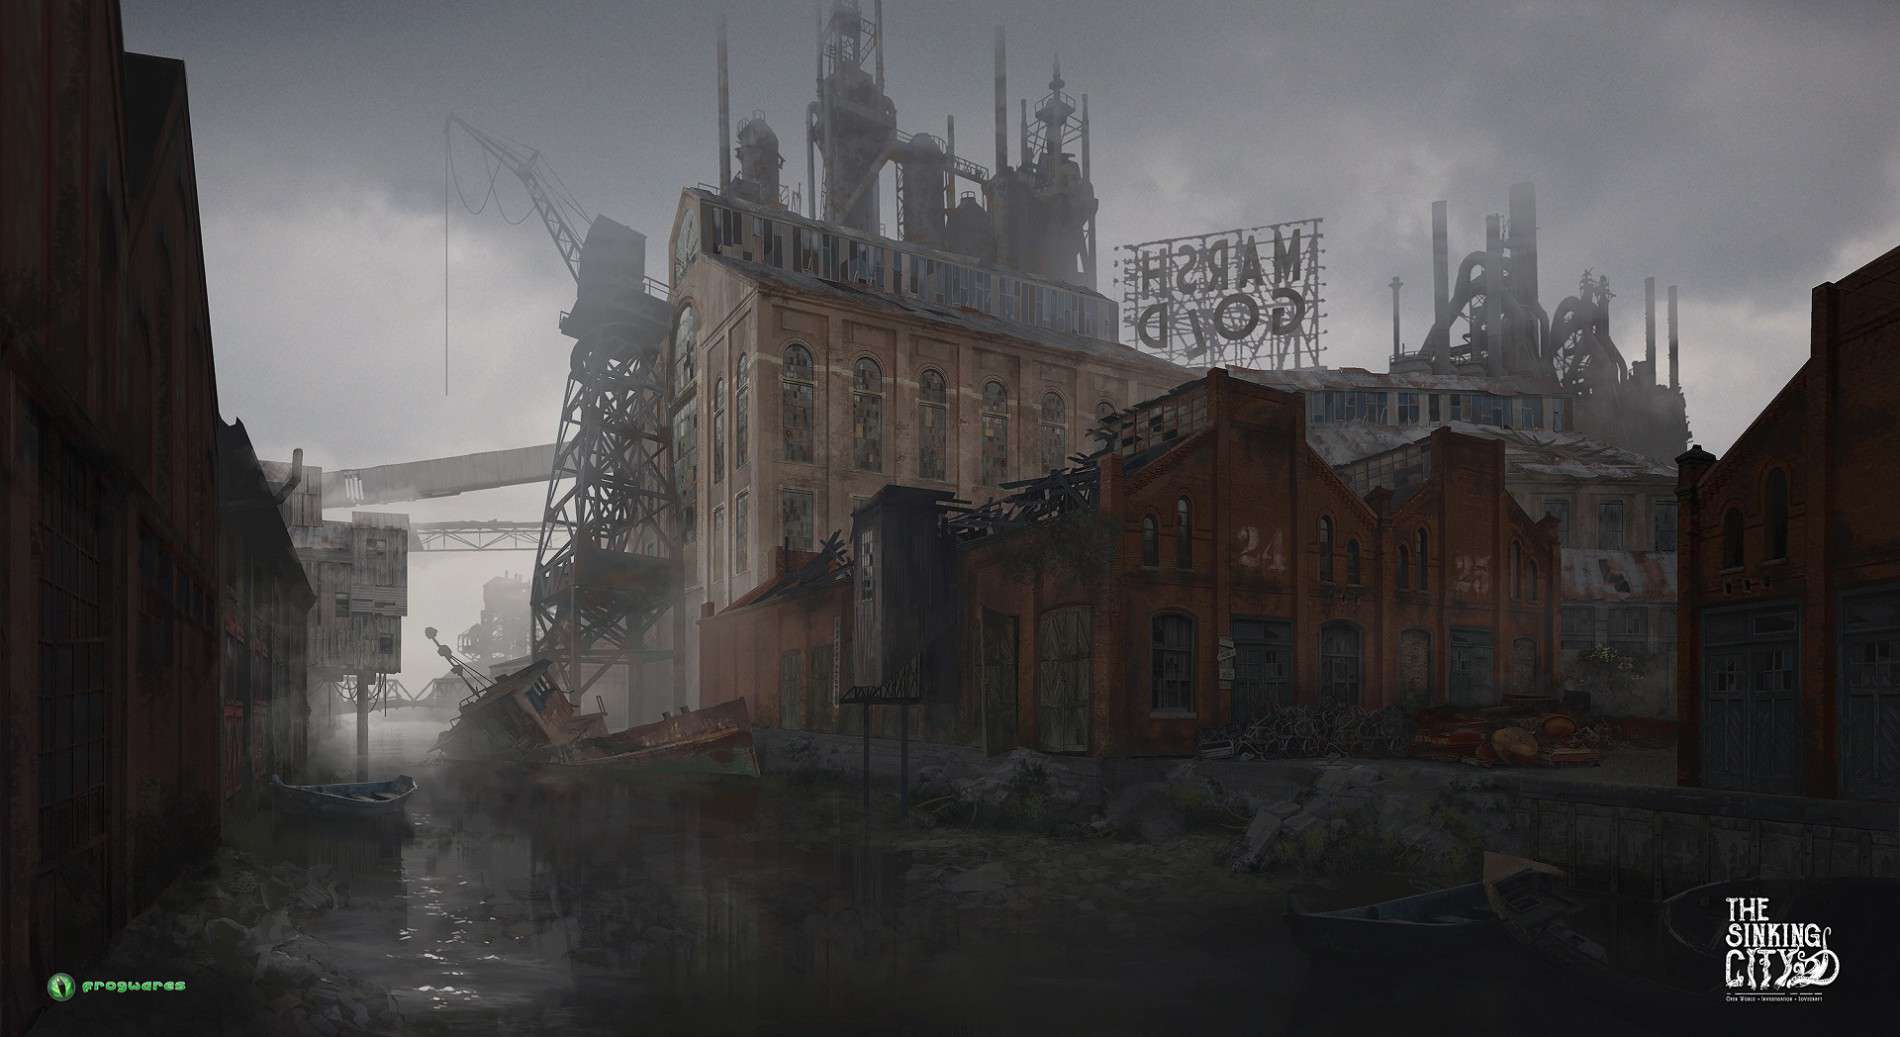 The Sinking City #2